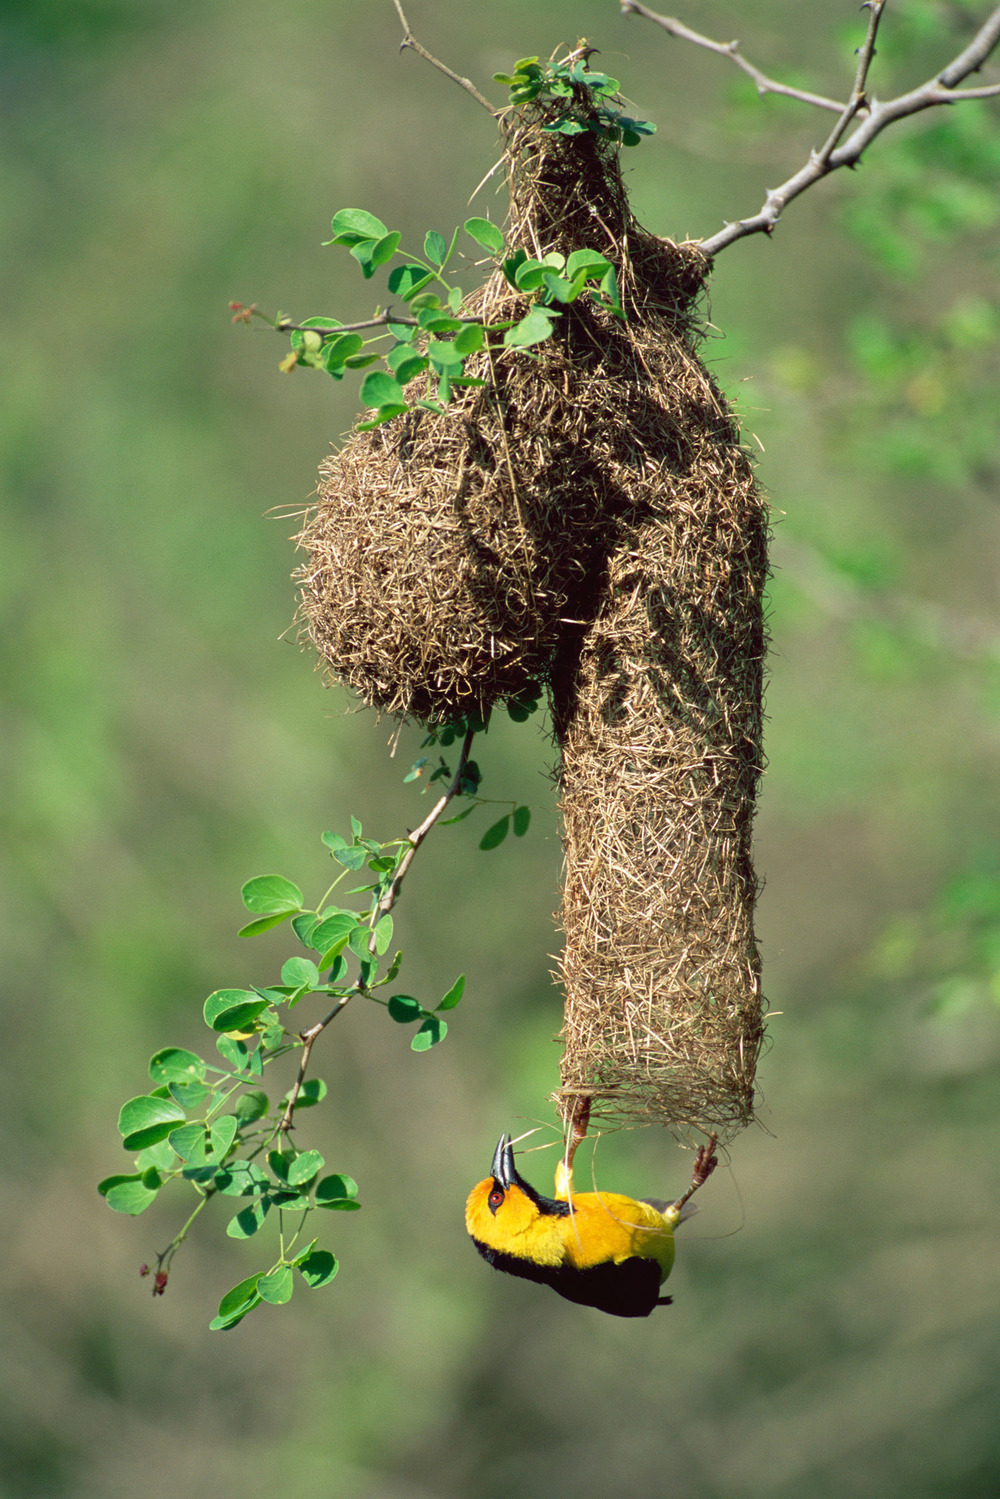 Black-necked weaver building nest, Tsavo West National Park, Kenya